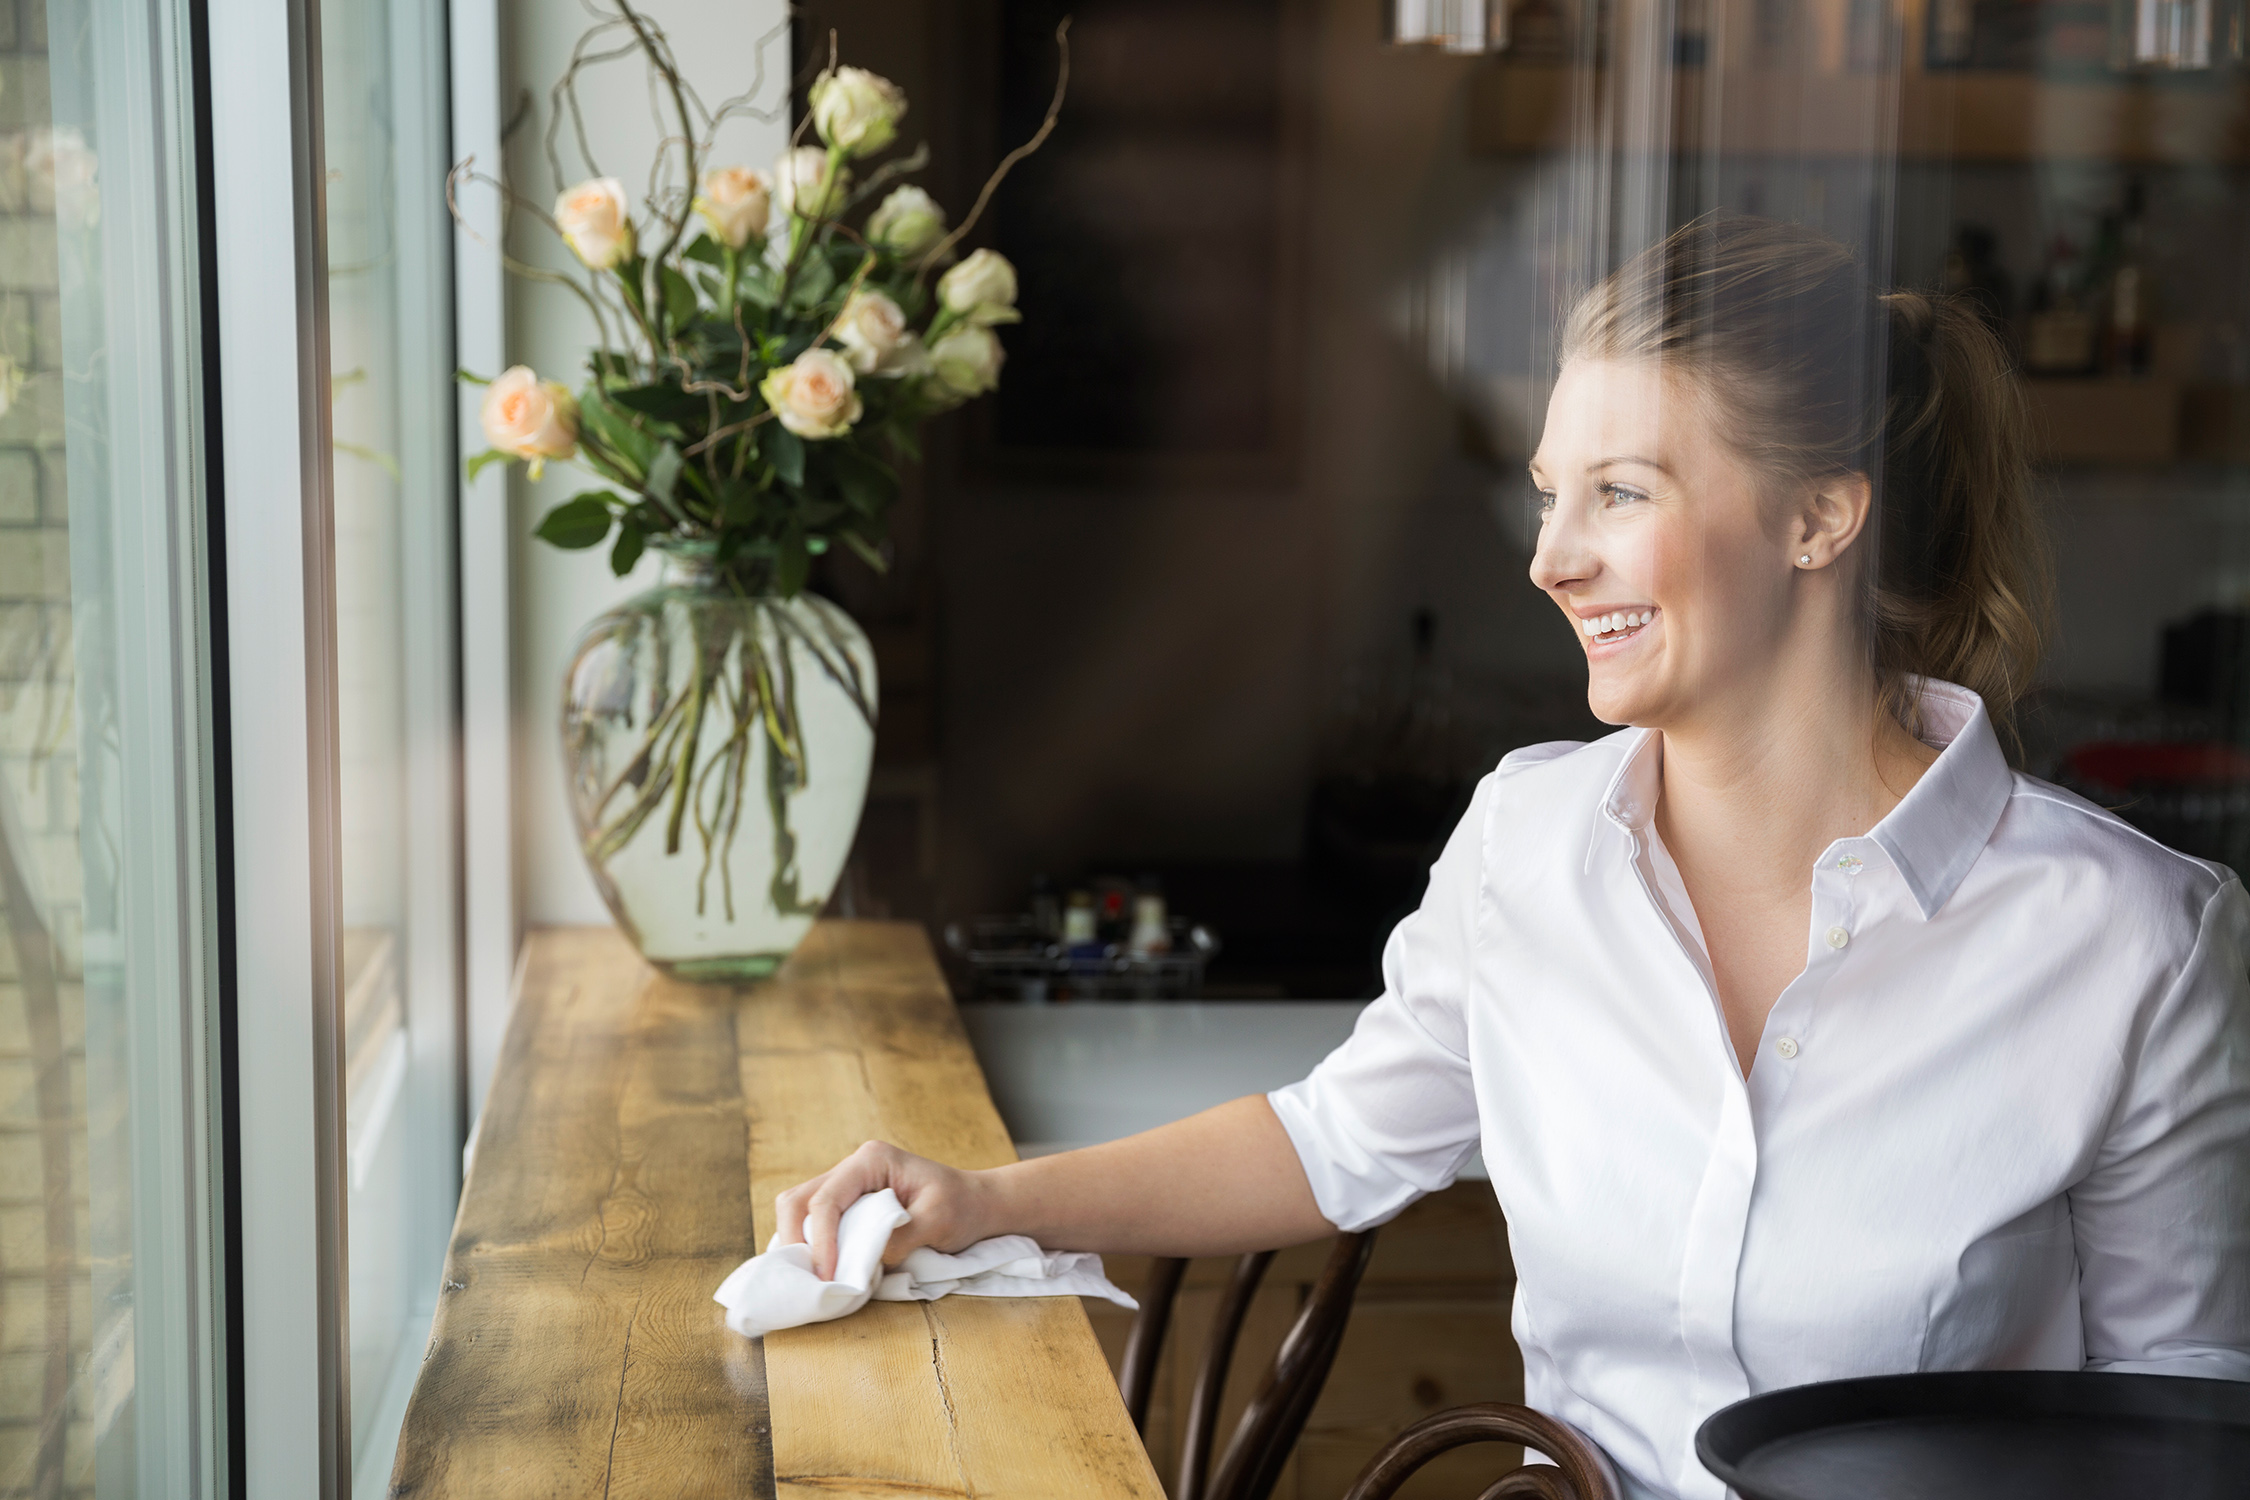 Waitress wiping counter and looking out window